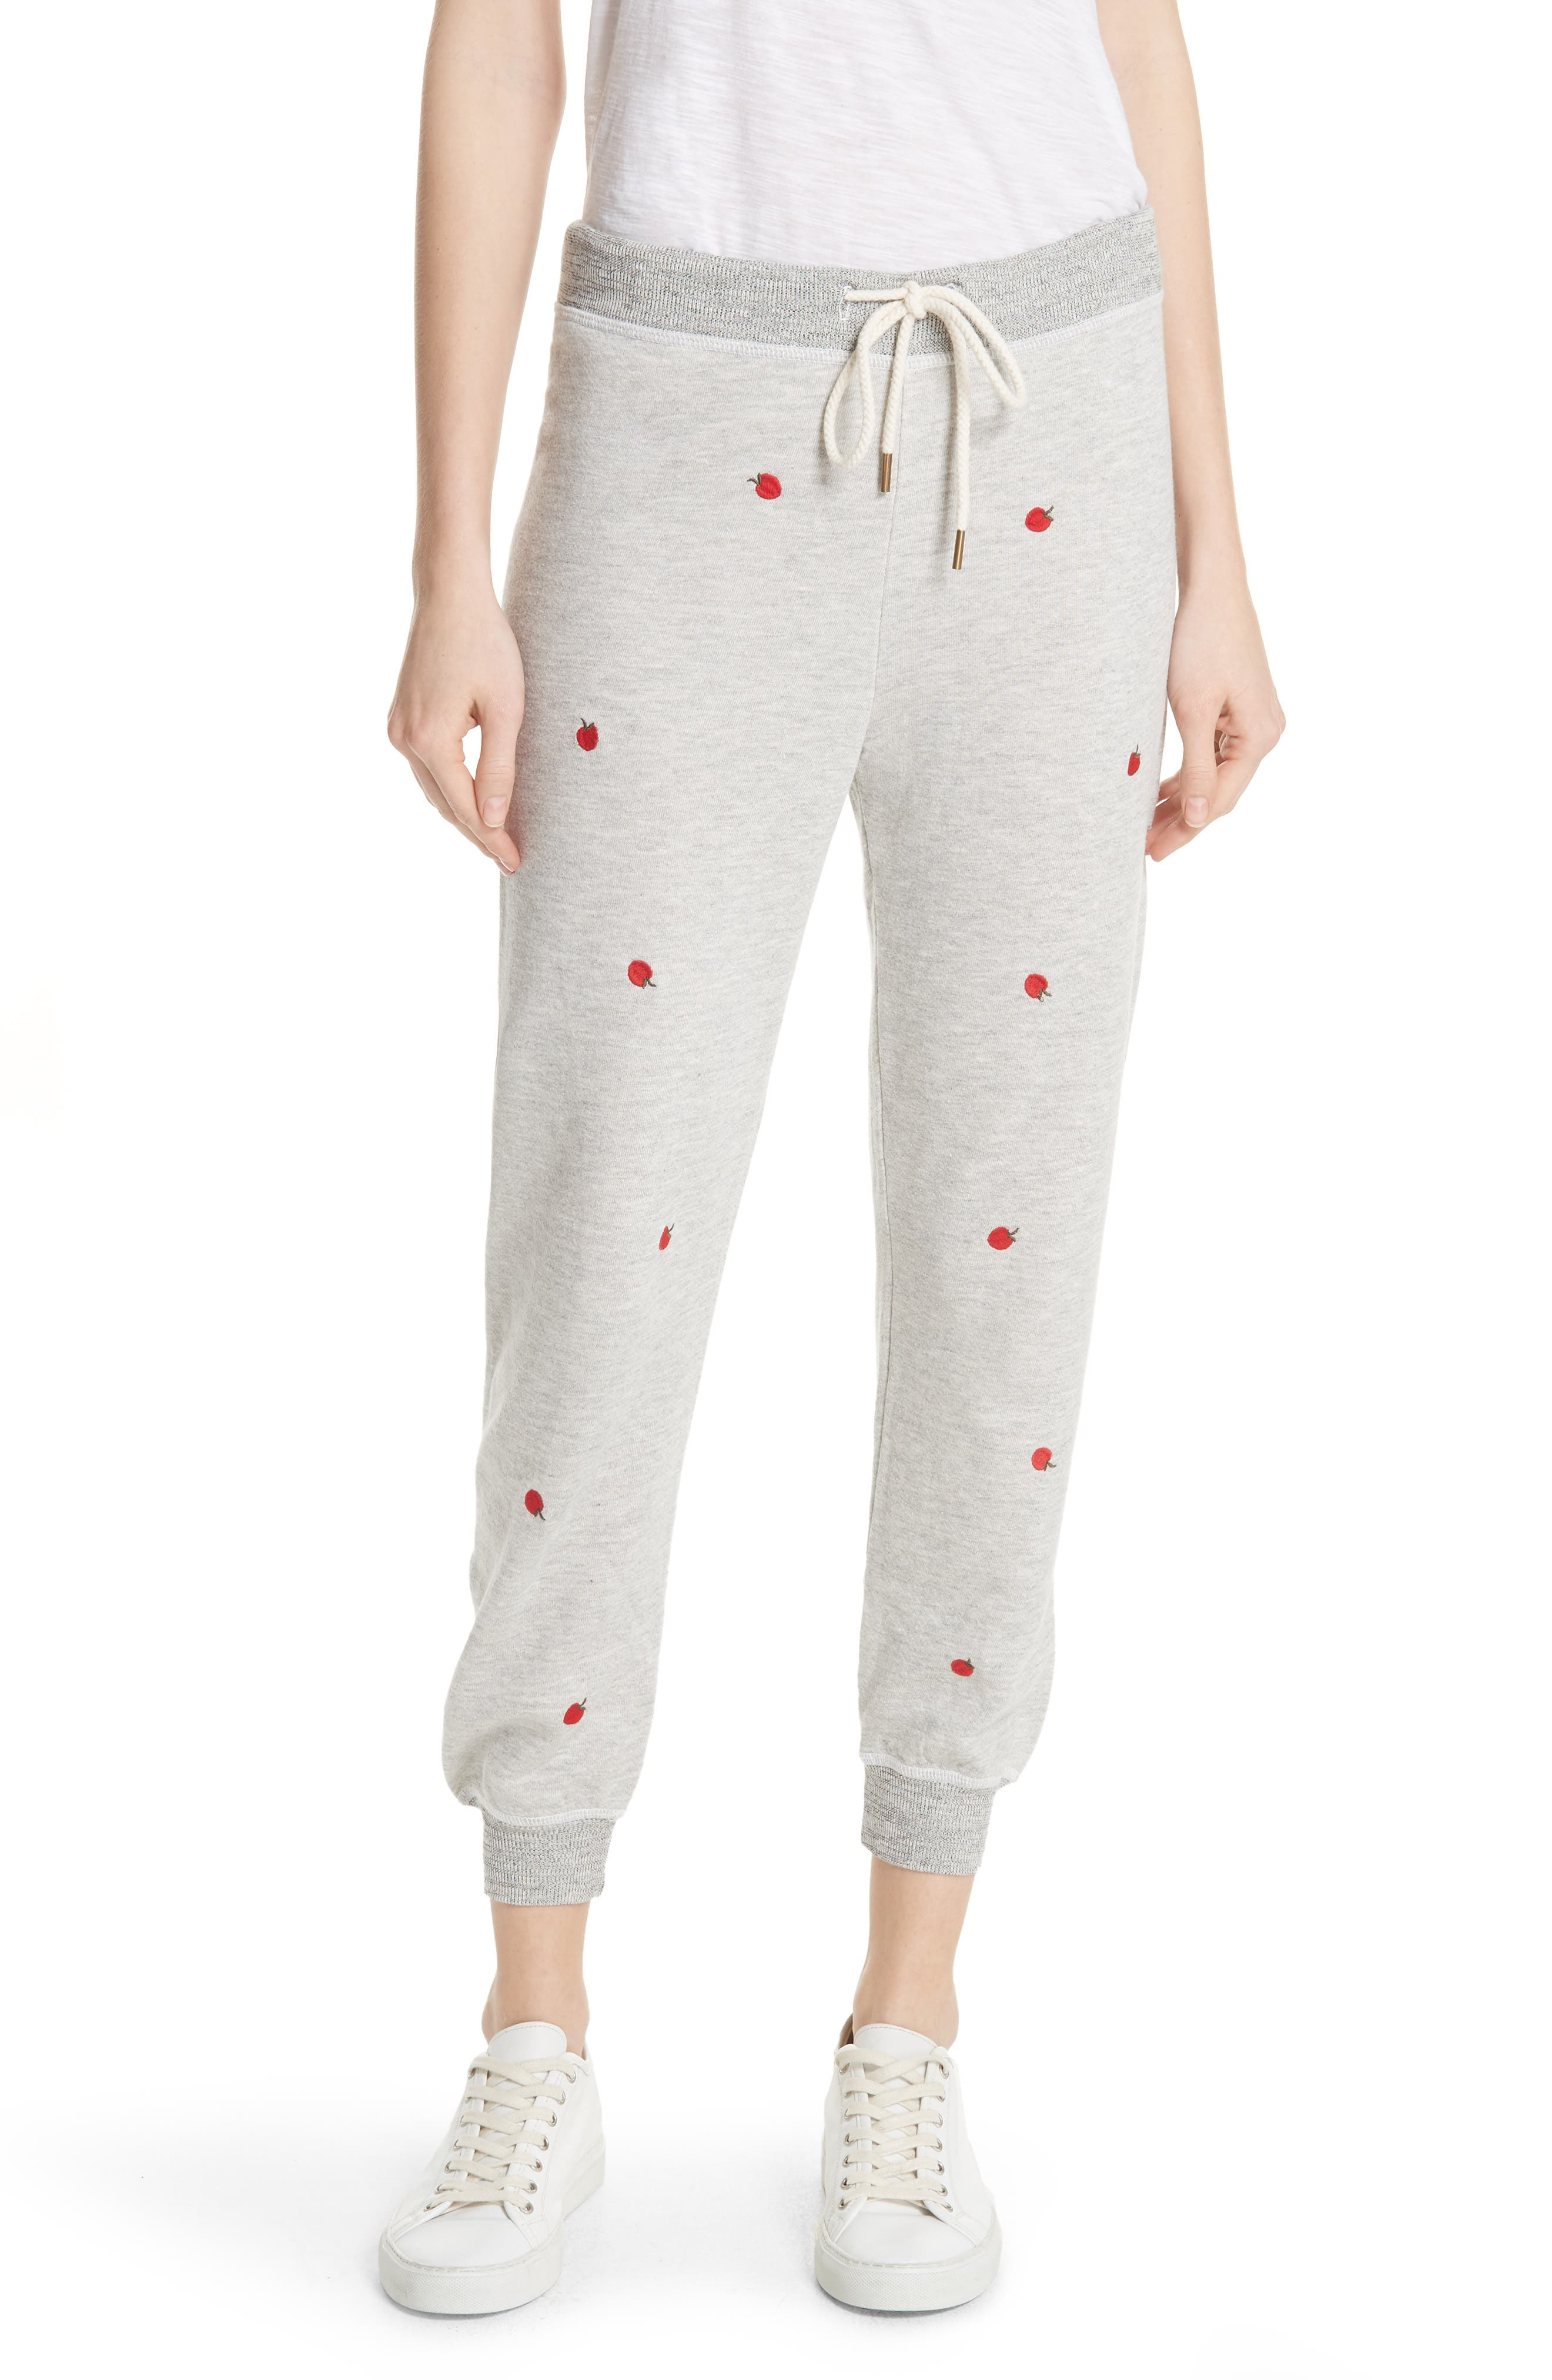 The Cropped Sweatpants,                             Main thumbnail 1, color,                             Light Heather Grey/ Red Apples